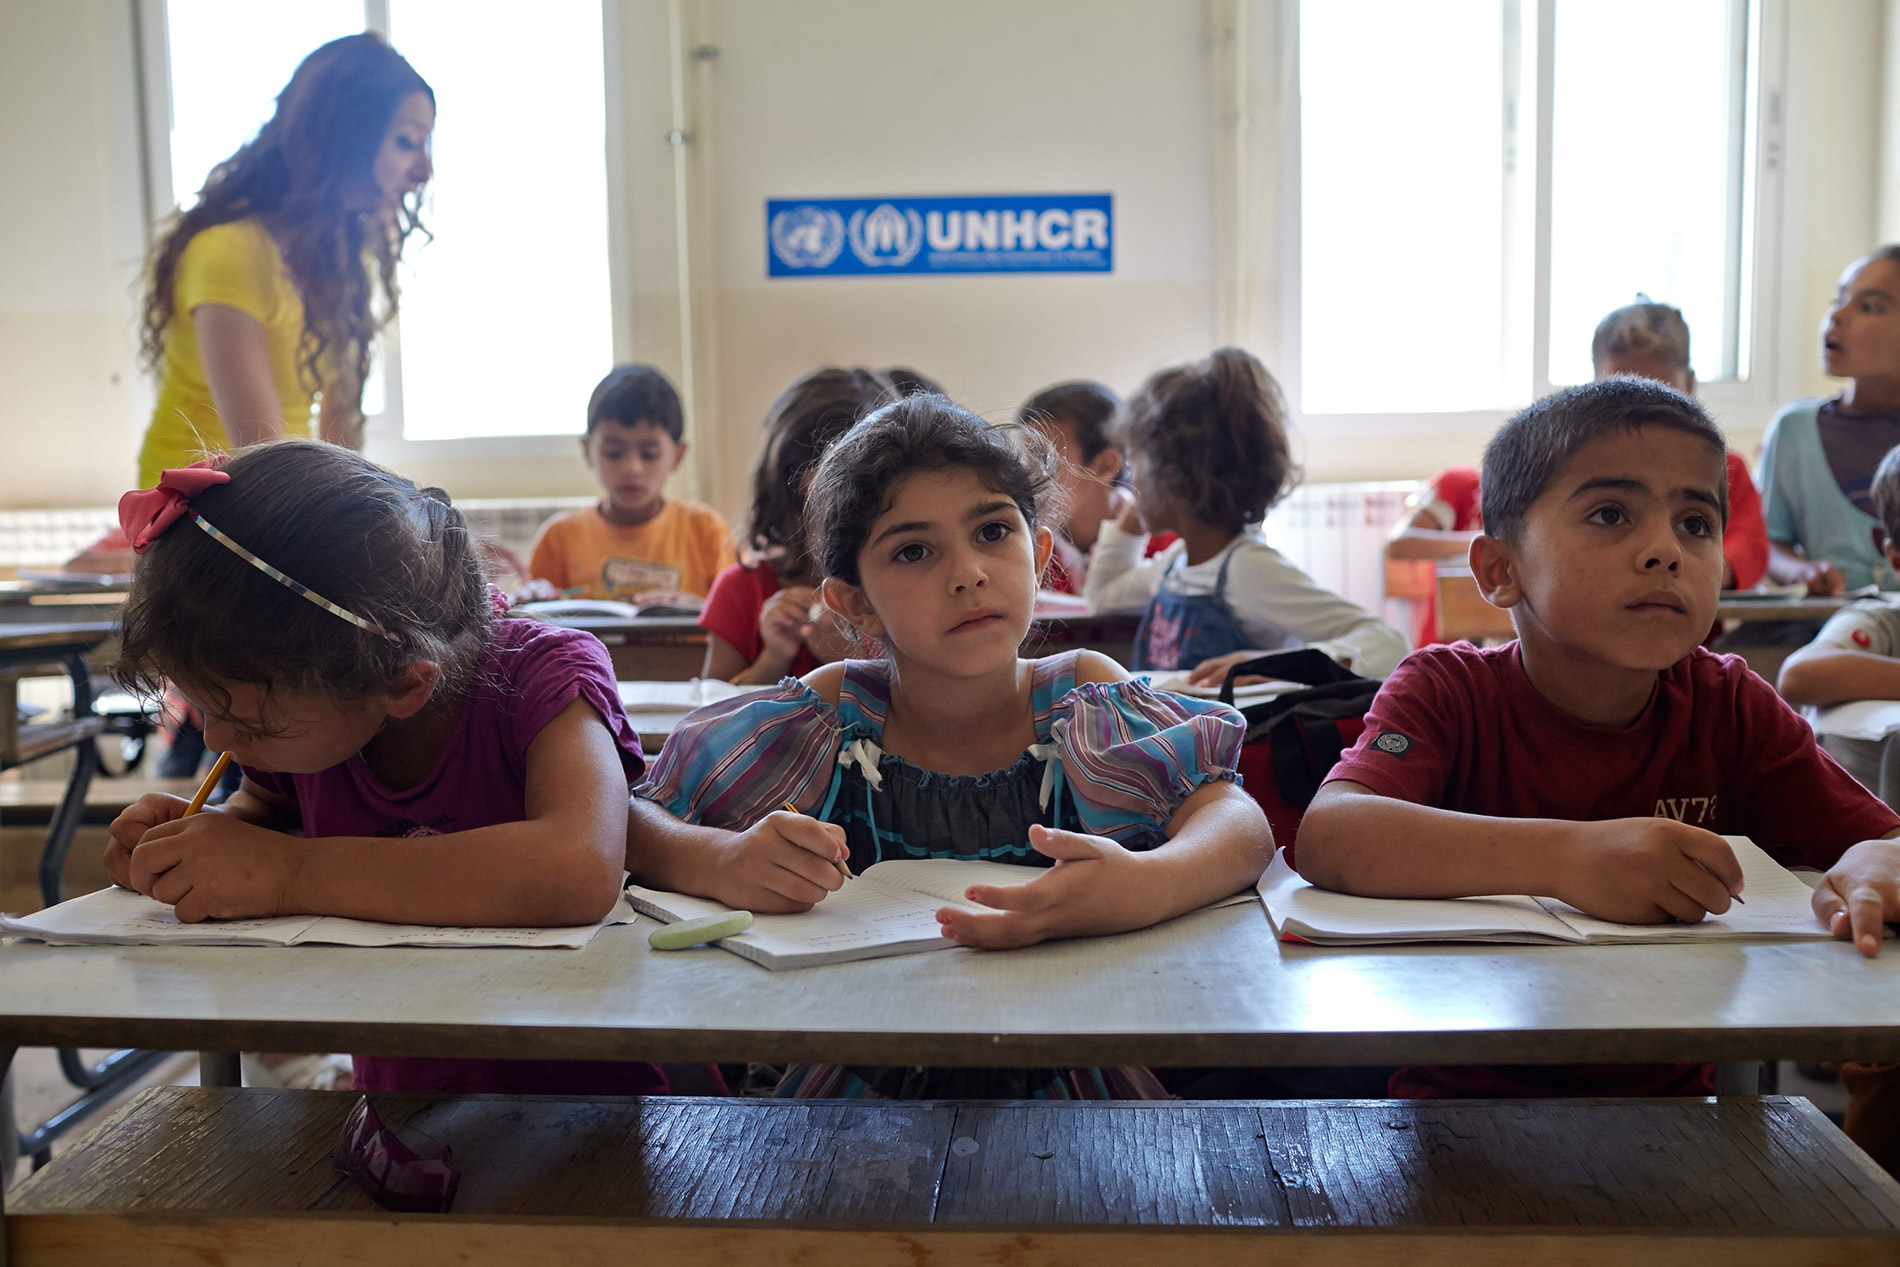 Refugee children in a classroom in a camp run by the United Nations High Commissioner for Refugees, or UNHCR.